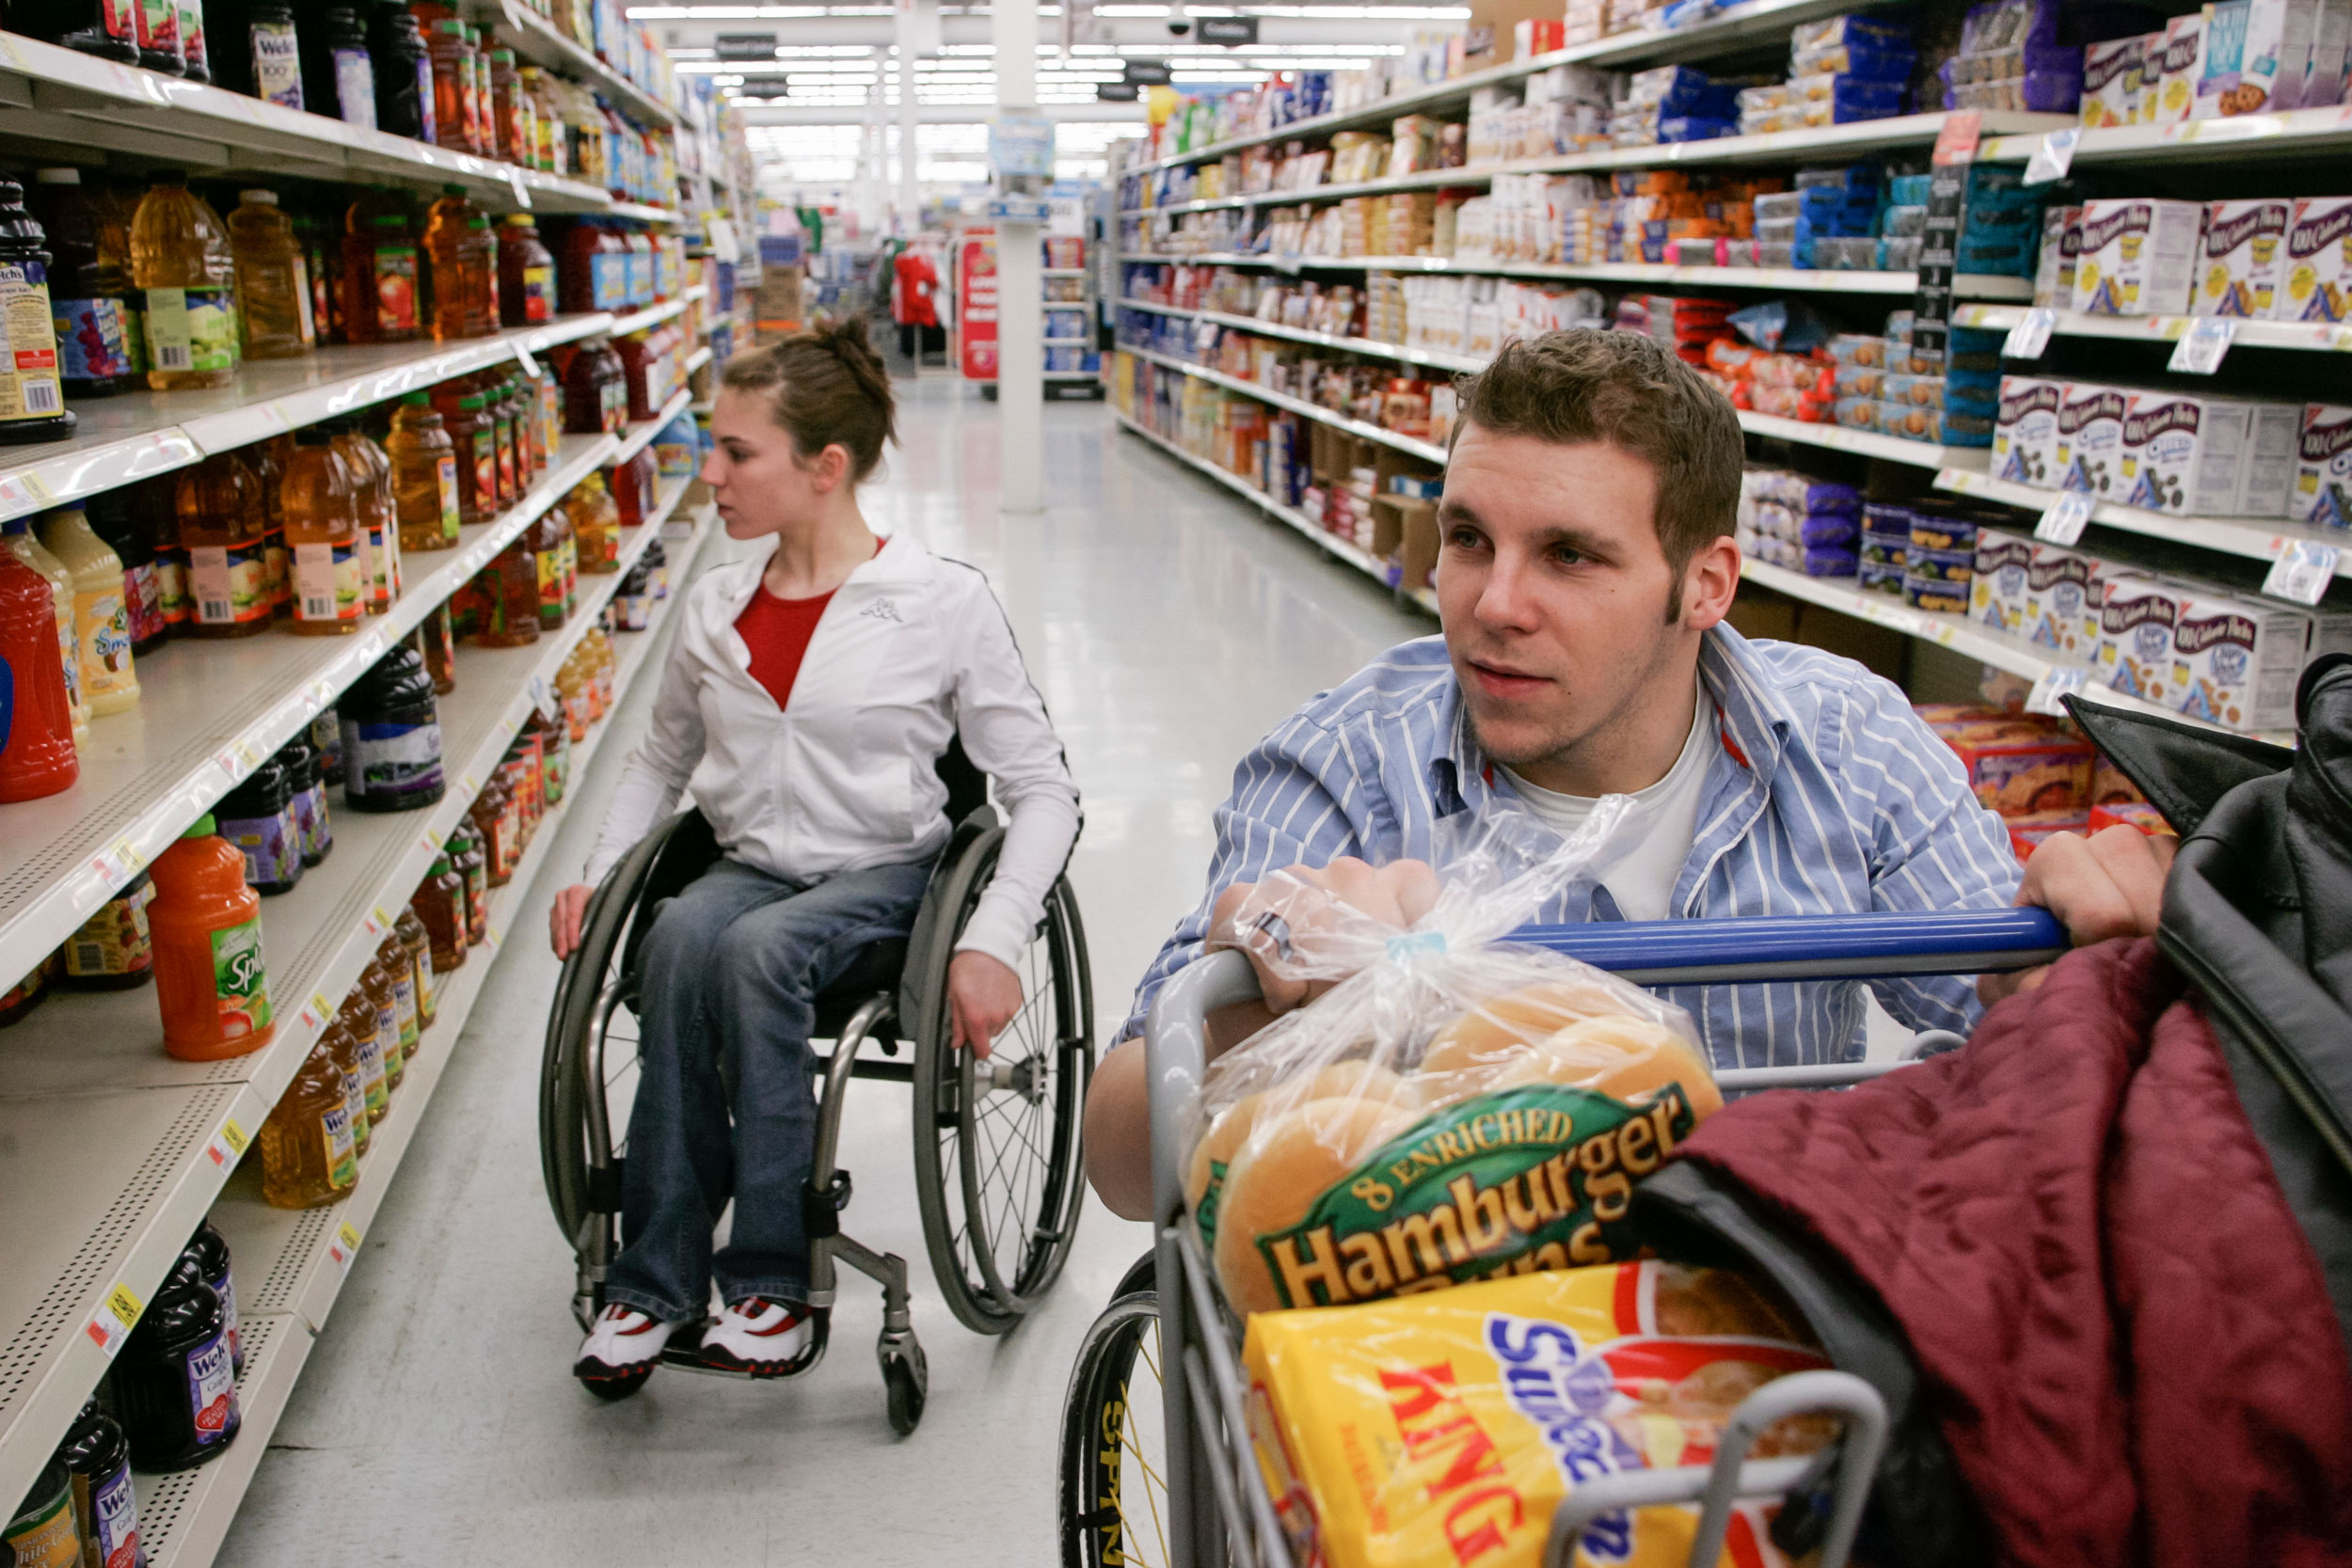 """Denny Muha and Amanda McGrory shop for food at Wal-Mart. Because Denny and Amanda are both in wheelchairs, """"it's easier to deal with any disability-related issues,"""" Muha said. """"I think it's easier because there's less to explain."""""""